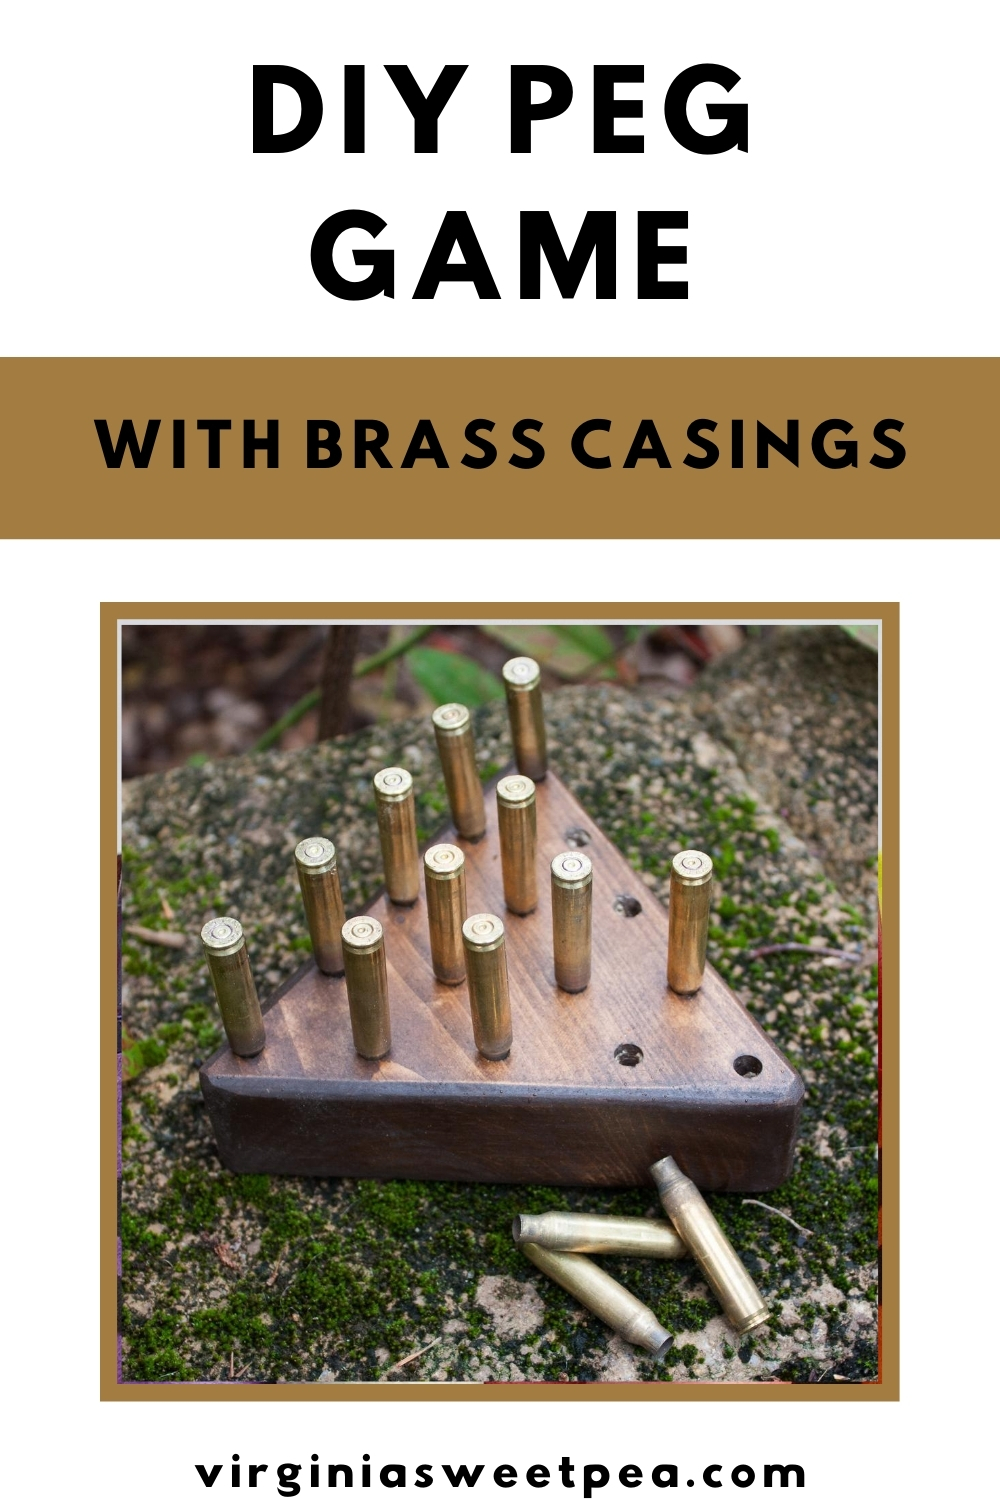 DIY Peg Game with Brass Casings - Learn how to make this game to play yourself or to give as a gift.  #diygift #groomsmangift #giftidea #handmadegift #mangift via @spaula